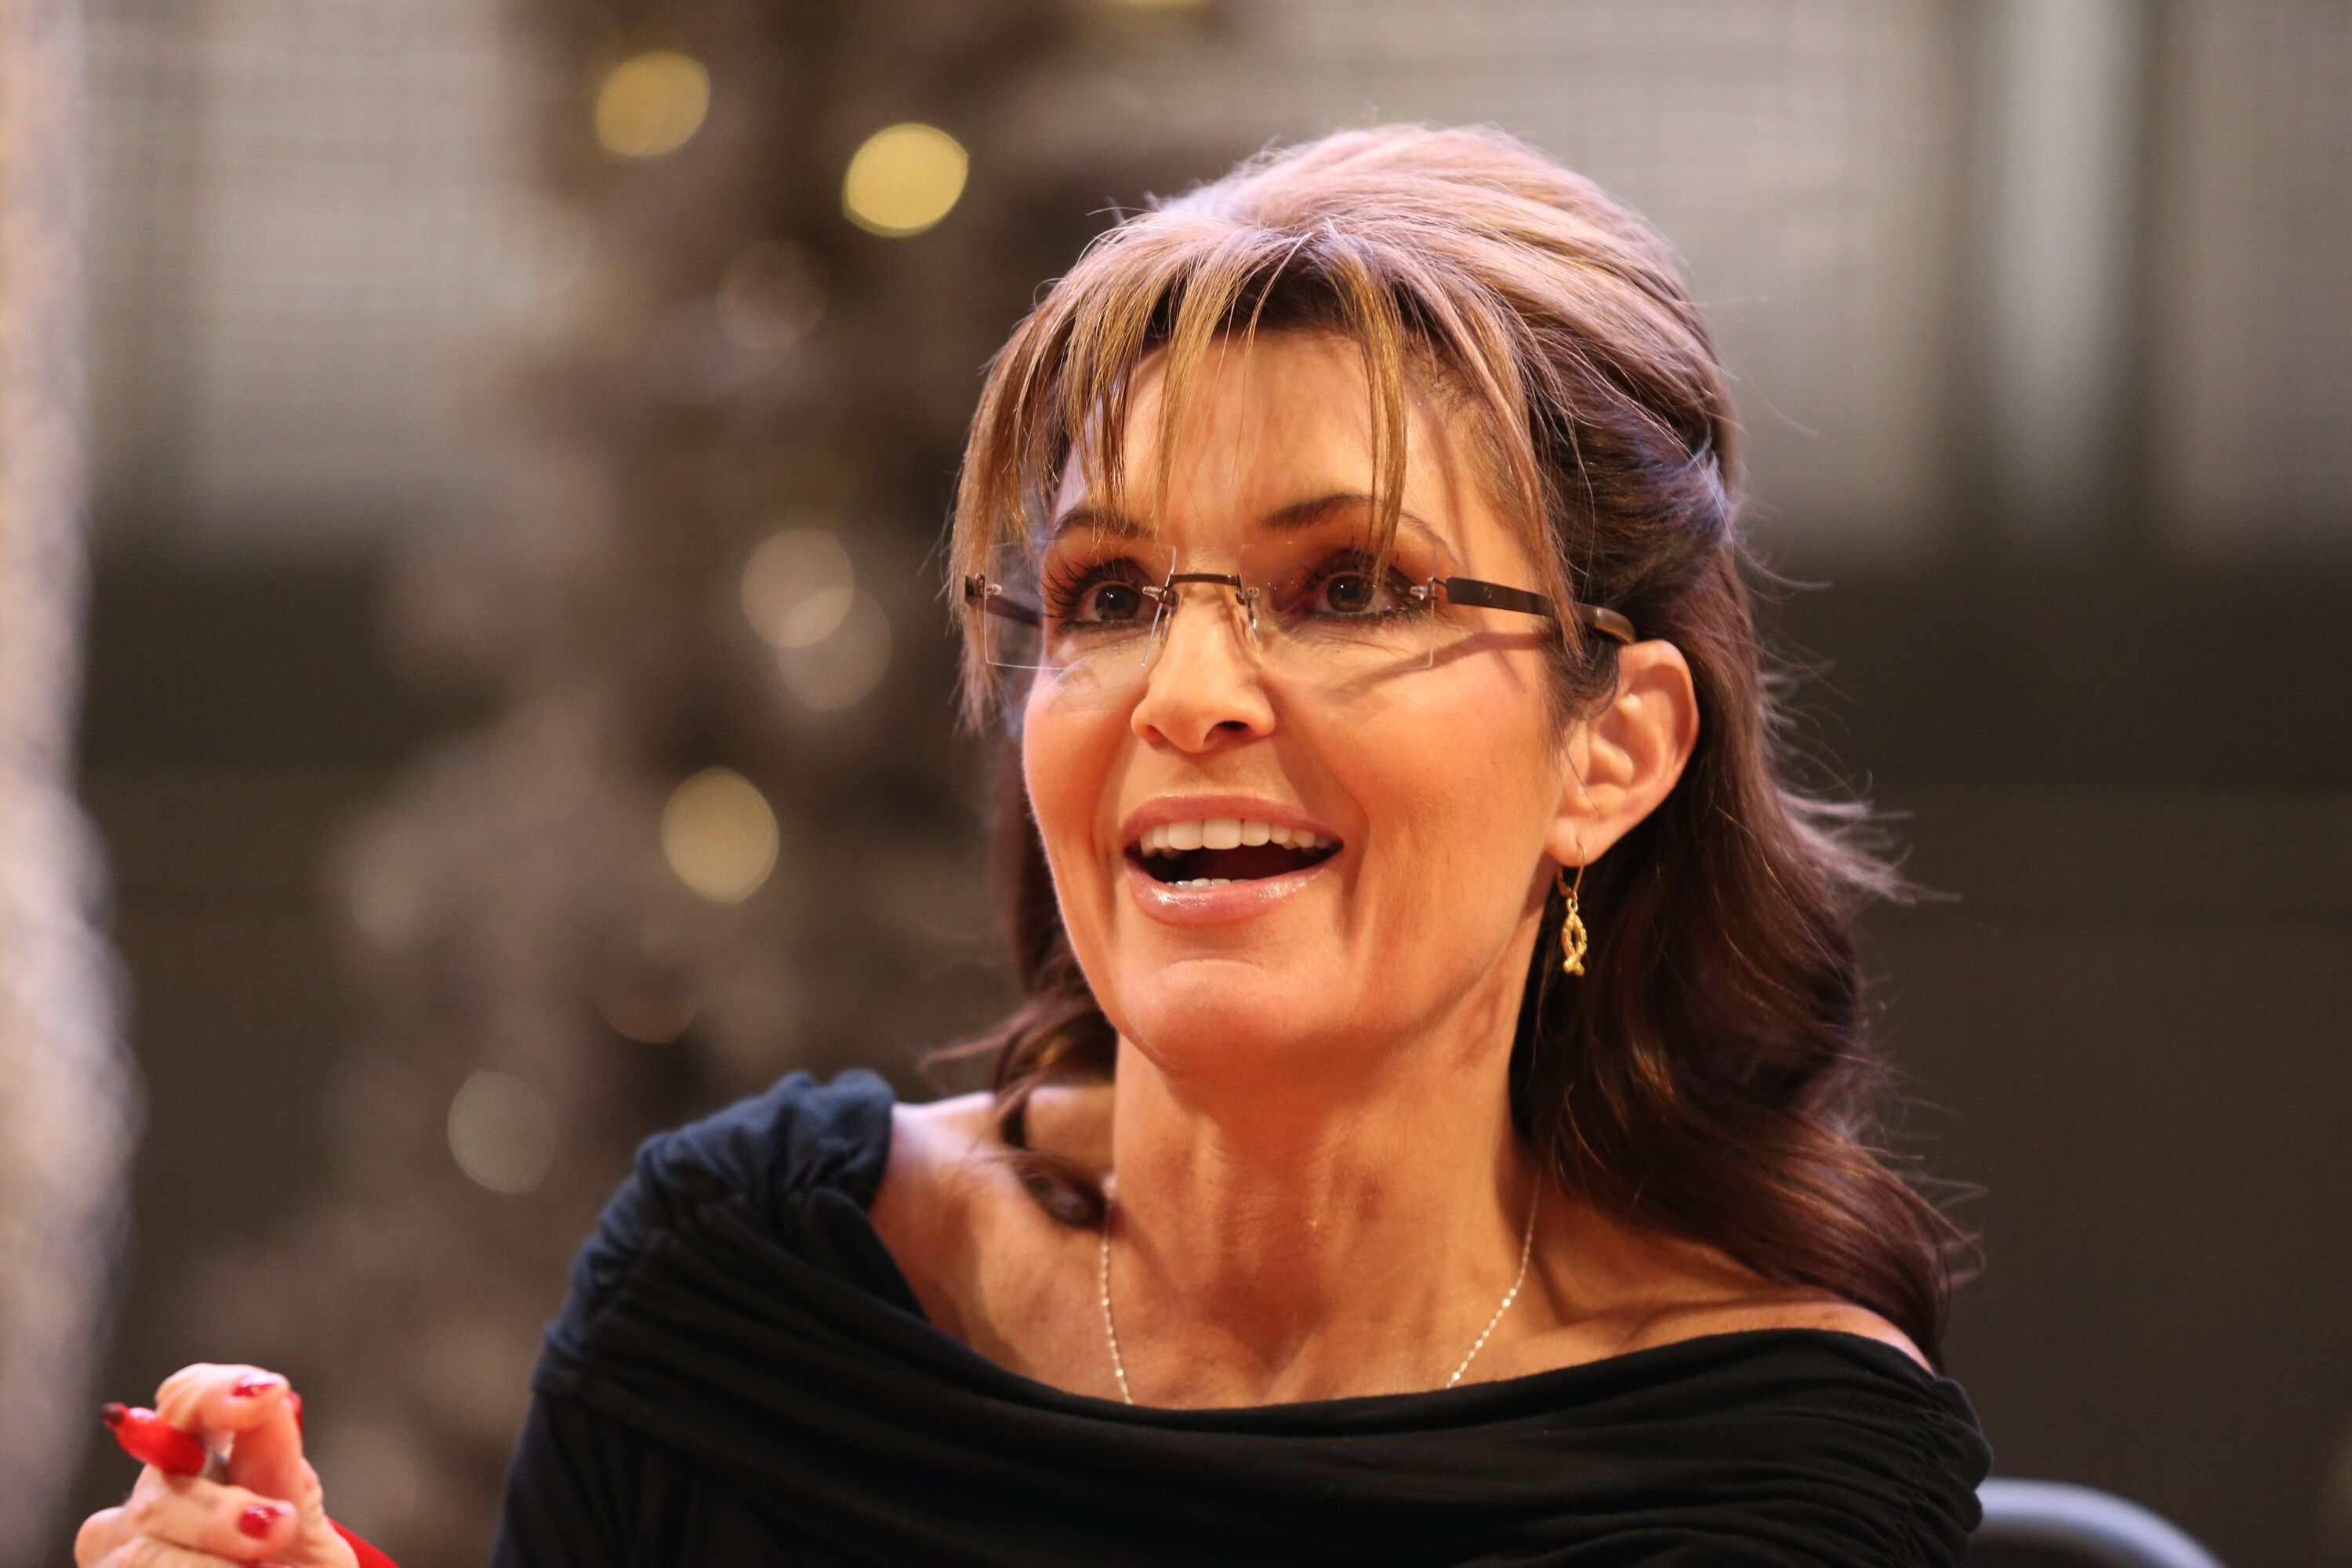 Sarah Palin signs copies of her book on November 21, 2013 at Mall of America, Minnesota. | Source: Getty Images